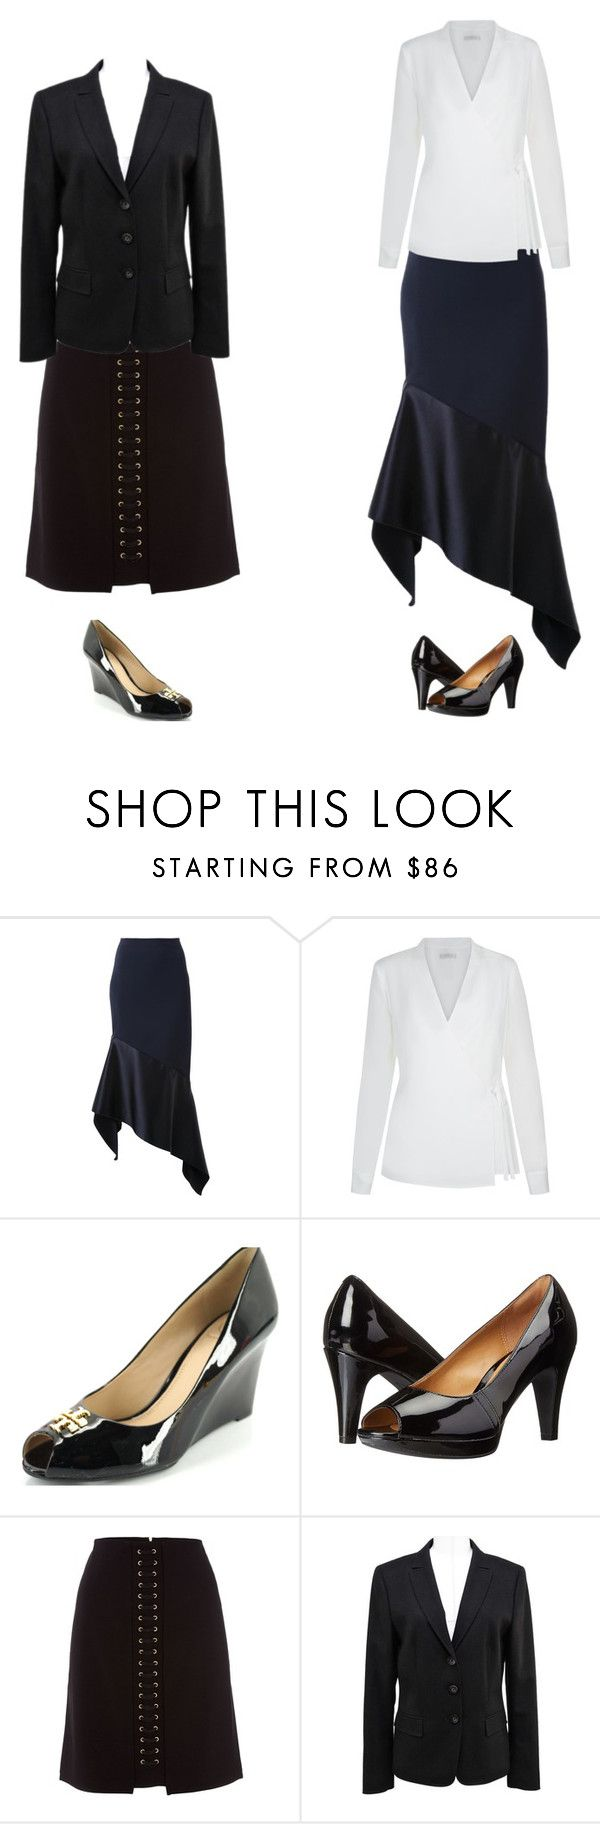 """""""Apple black and white"""" by mimi-briji on Polyvore featuring Dion Lee, Hobbs, Tory Burch, Clarks, Biba and ESCADA"""